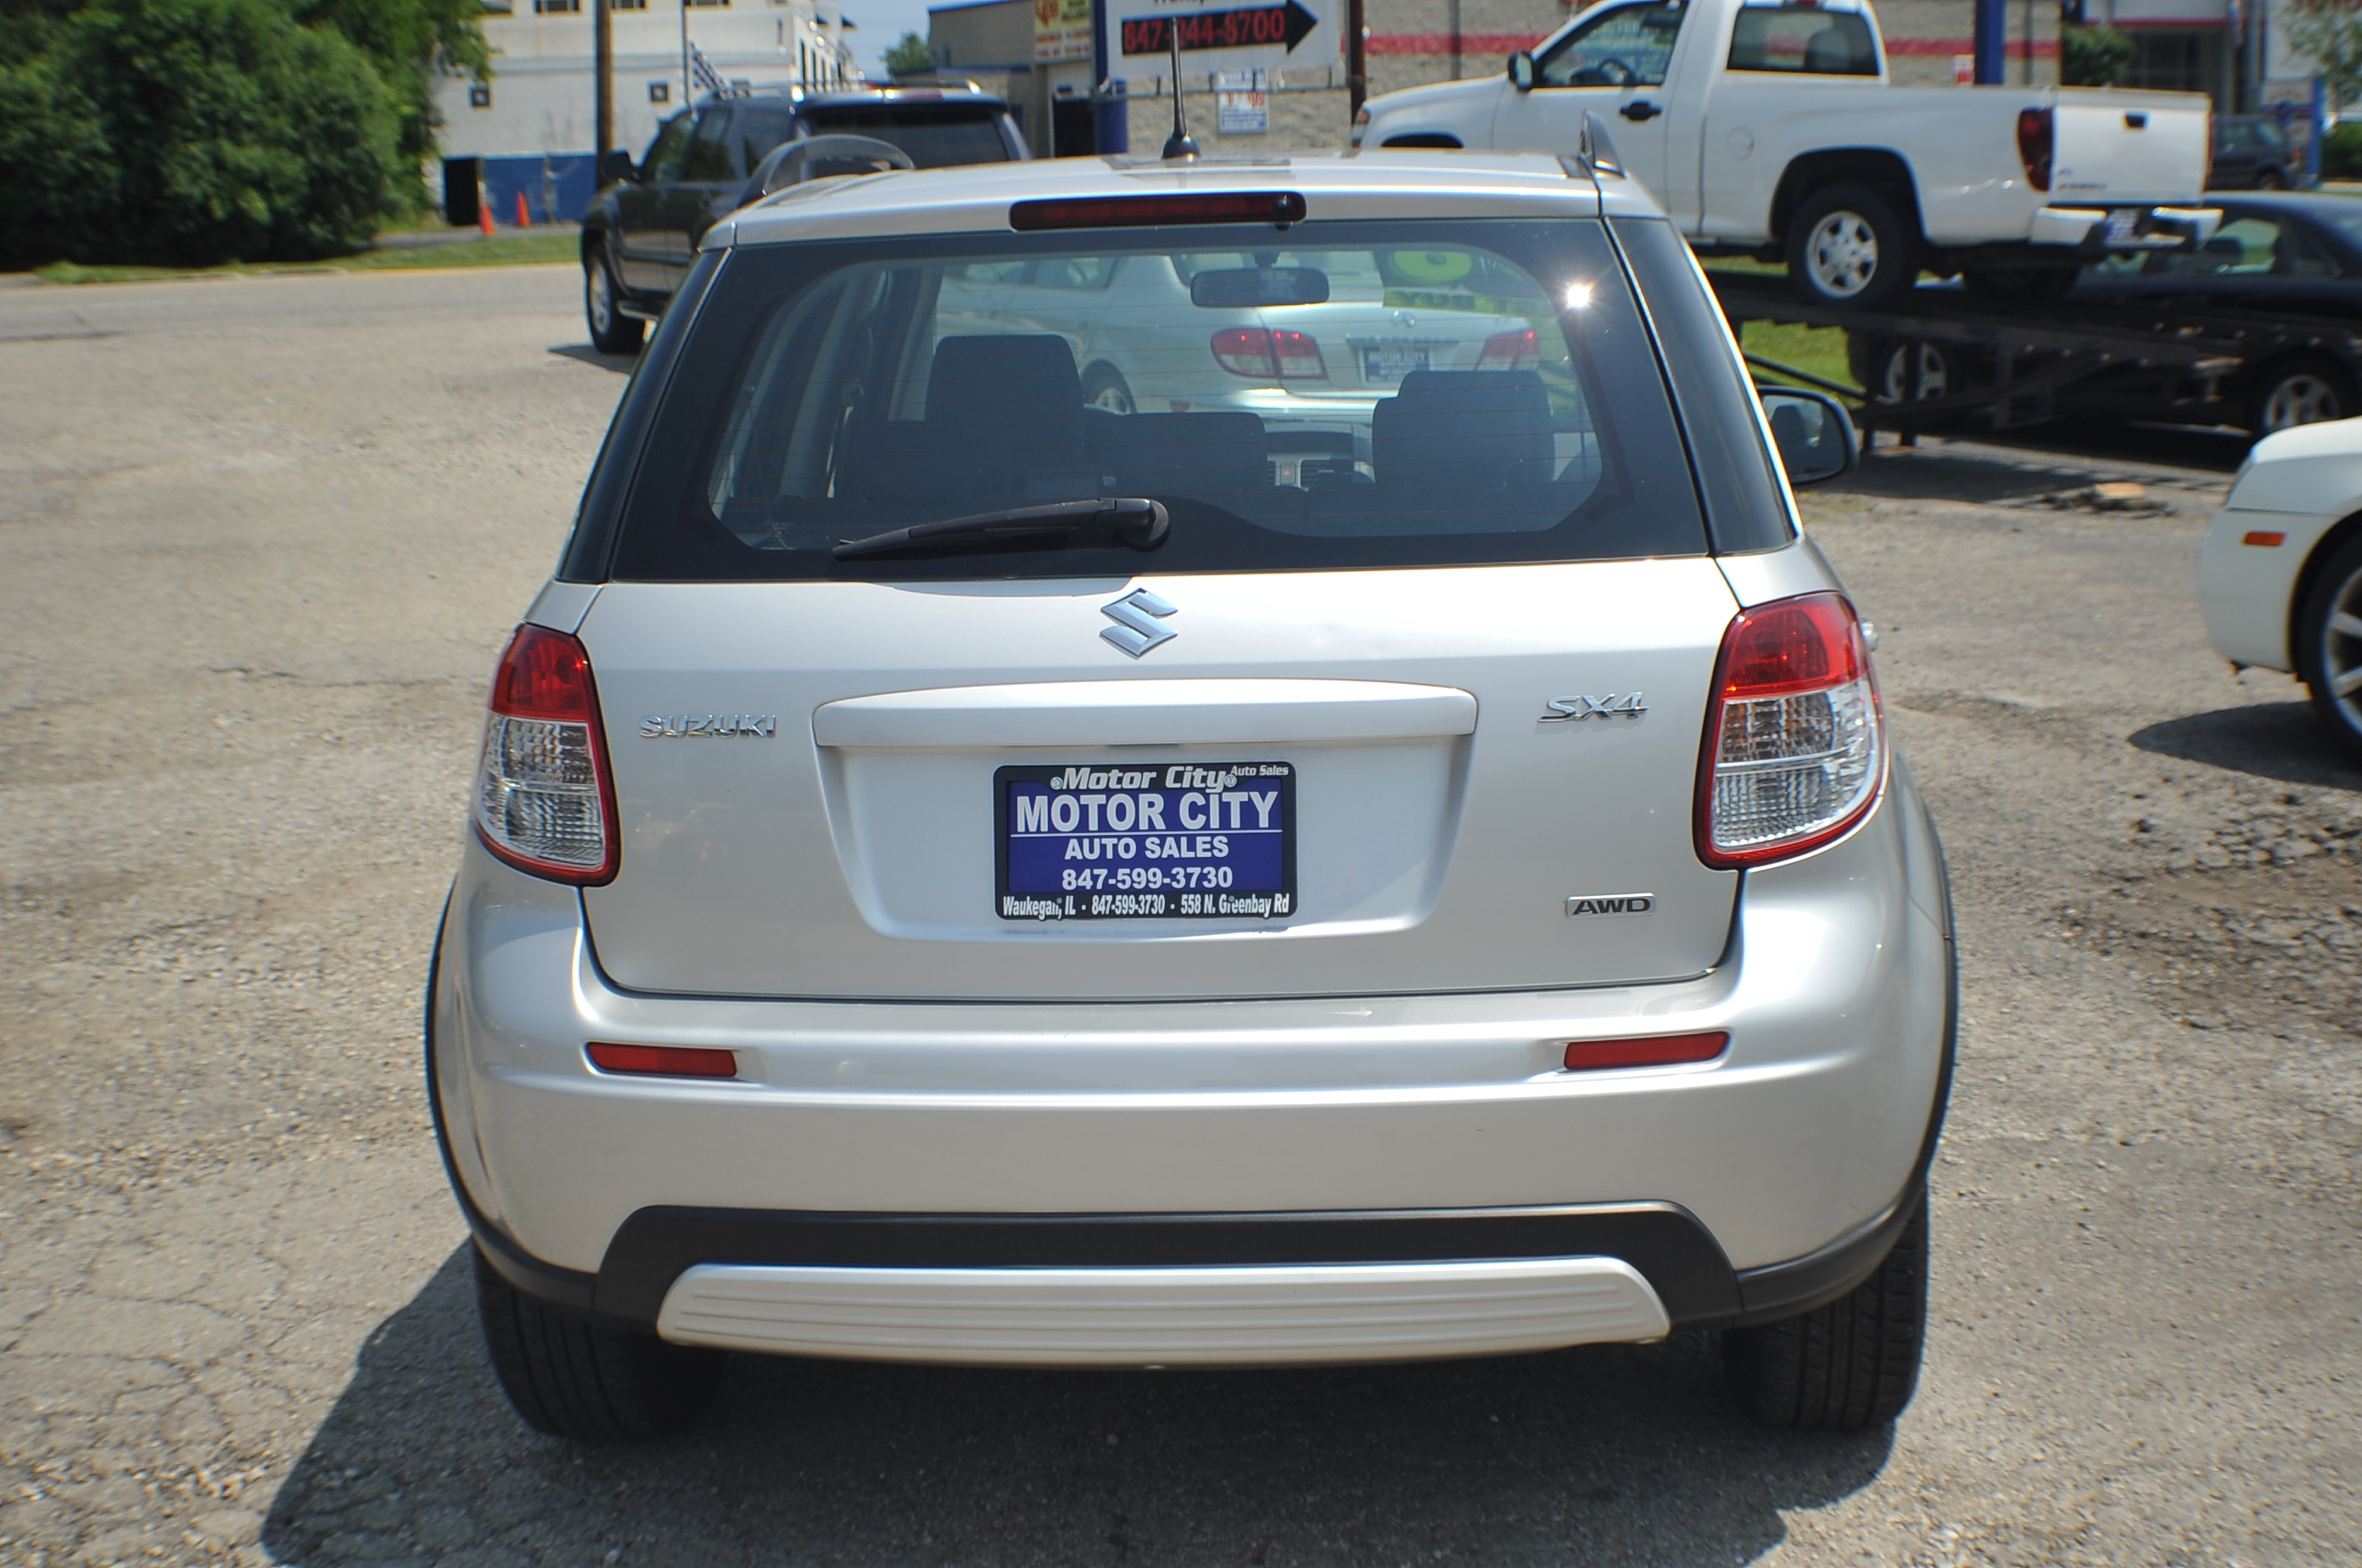 2008 Suzuki SX4 AWD Silver Sport Hatchback Used Car Sale Waukegan Kenosha